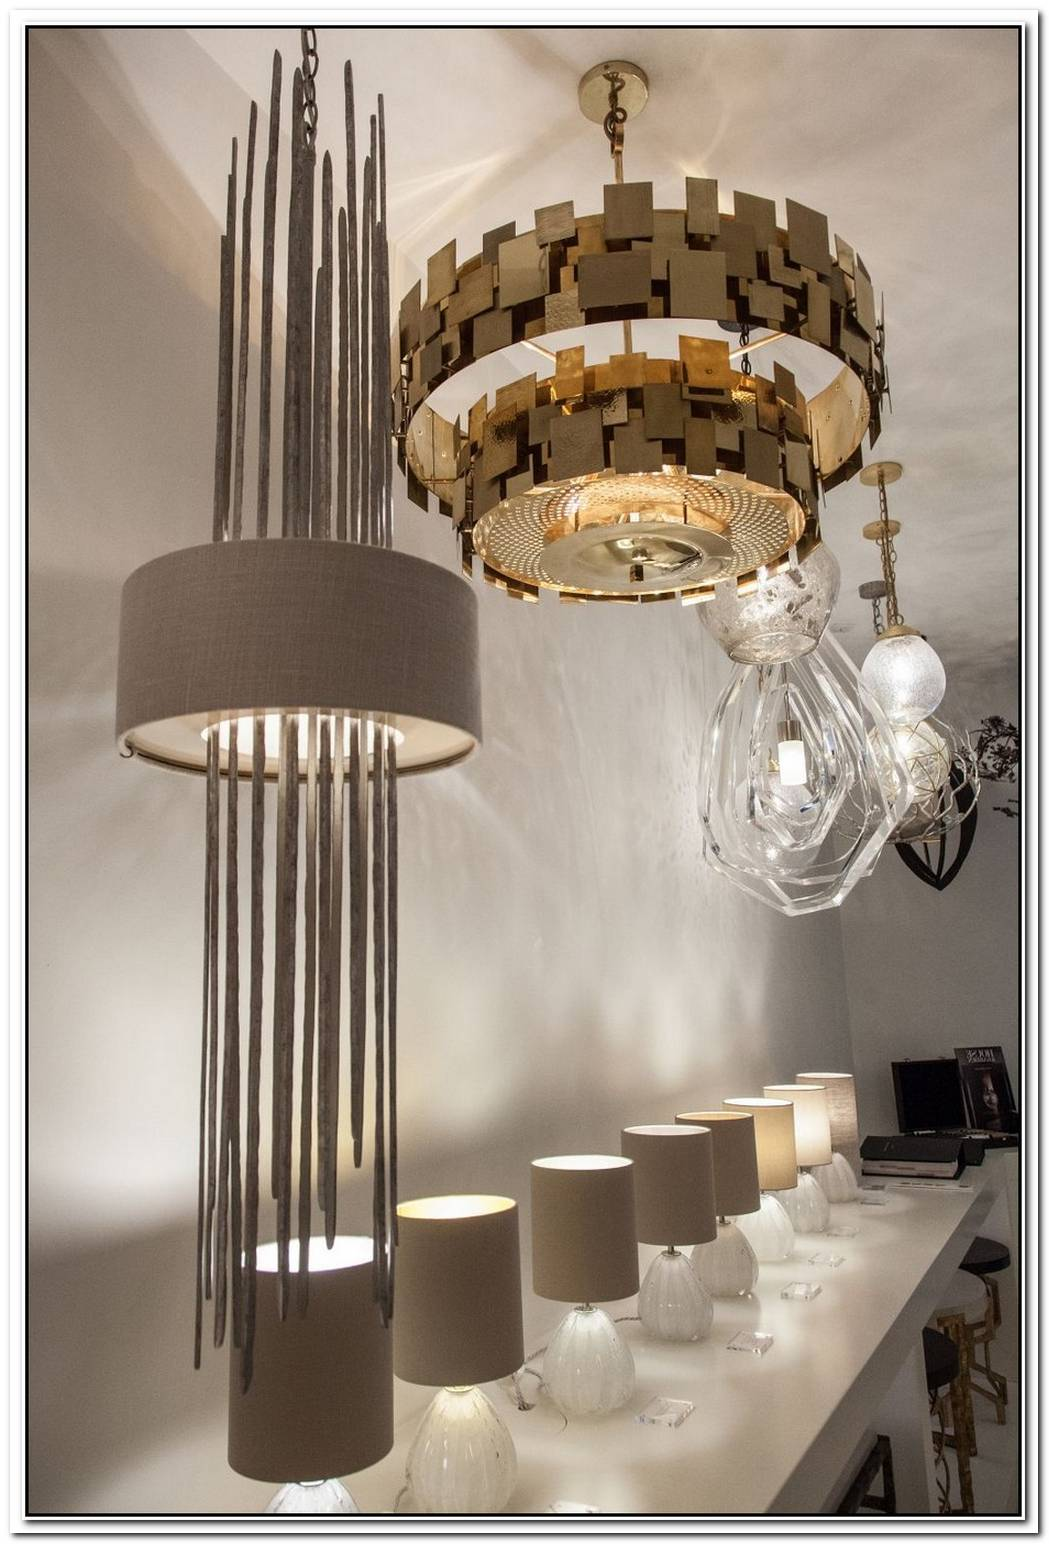 Hanging Pendant Lighting That Mesmerizes In The Most Elegant Ways